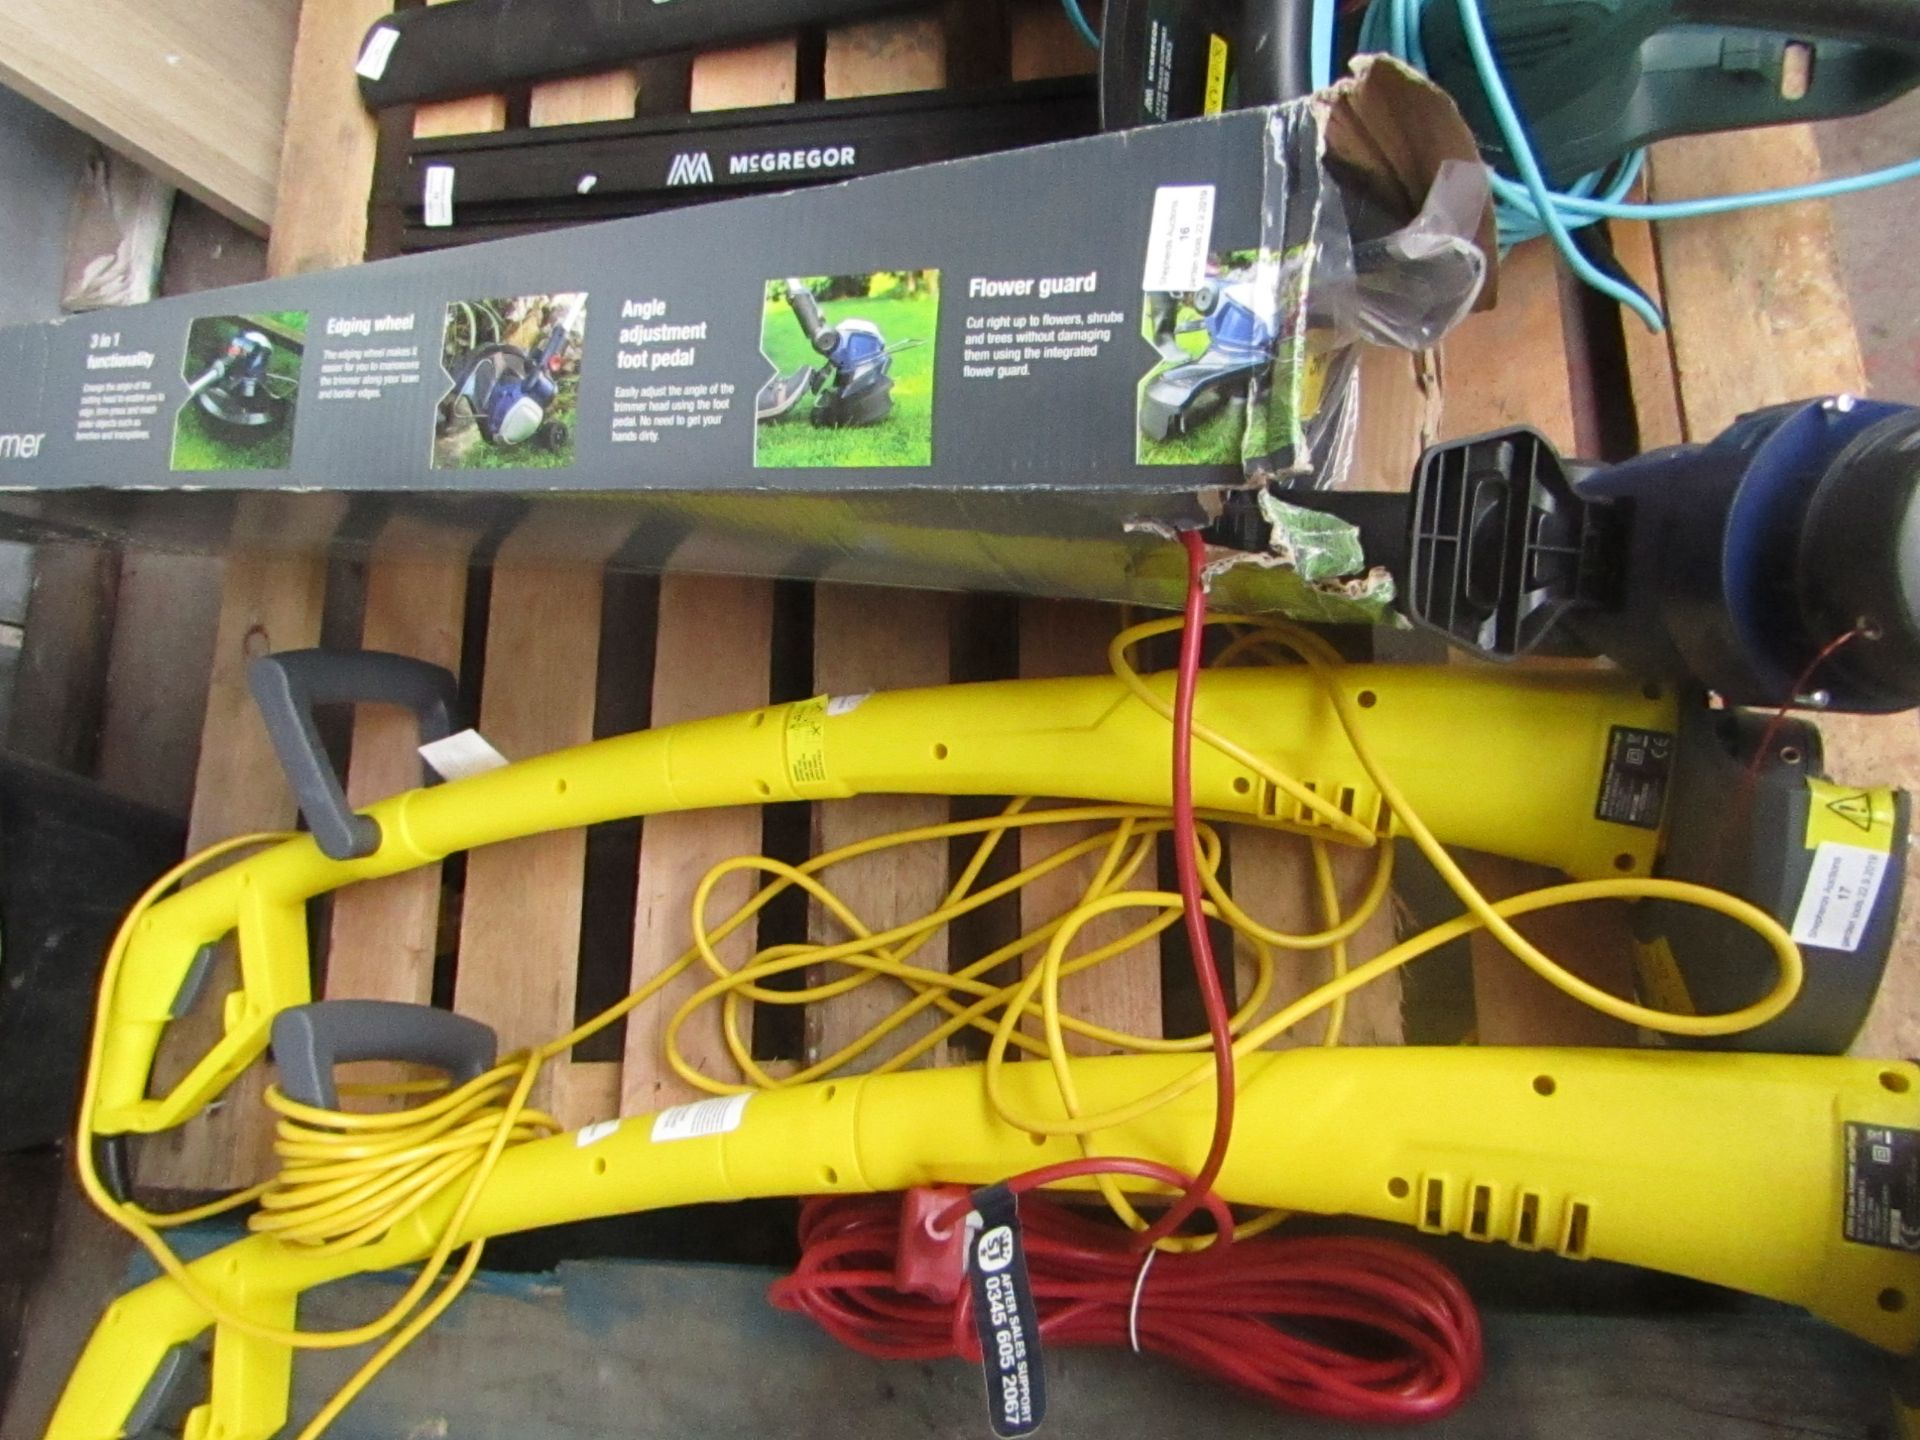 Lotto 17 - Challenge Grass Strimmer, tested working